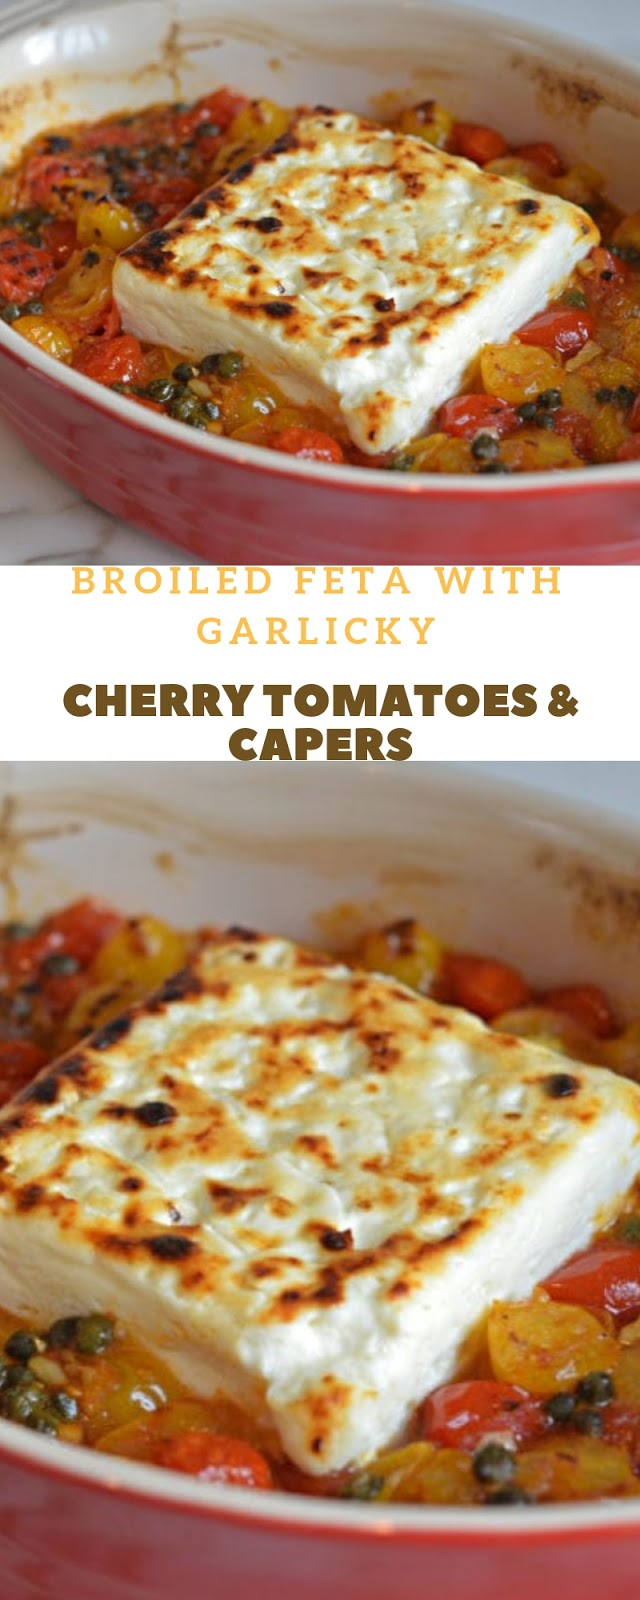 Broiled Feta with Garlicky Cherry Tomatoes&Capers